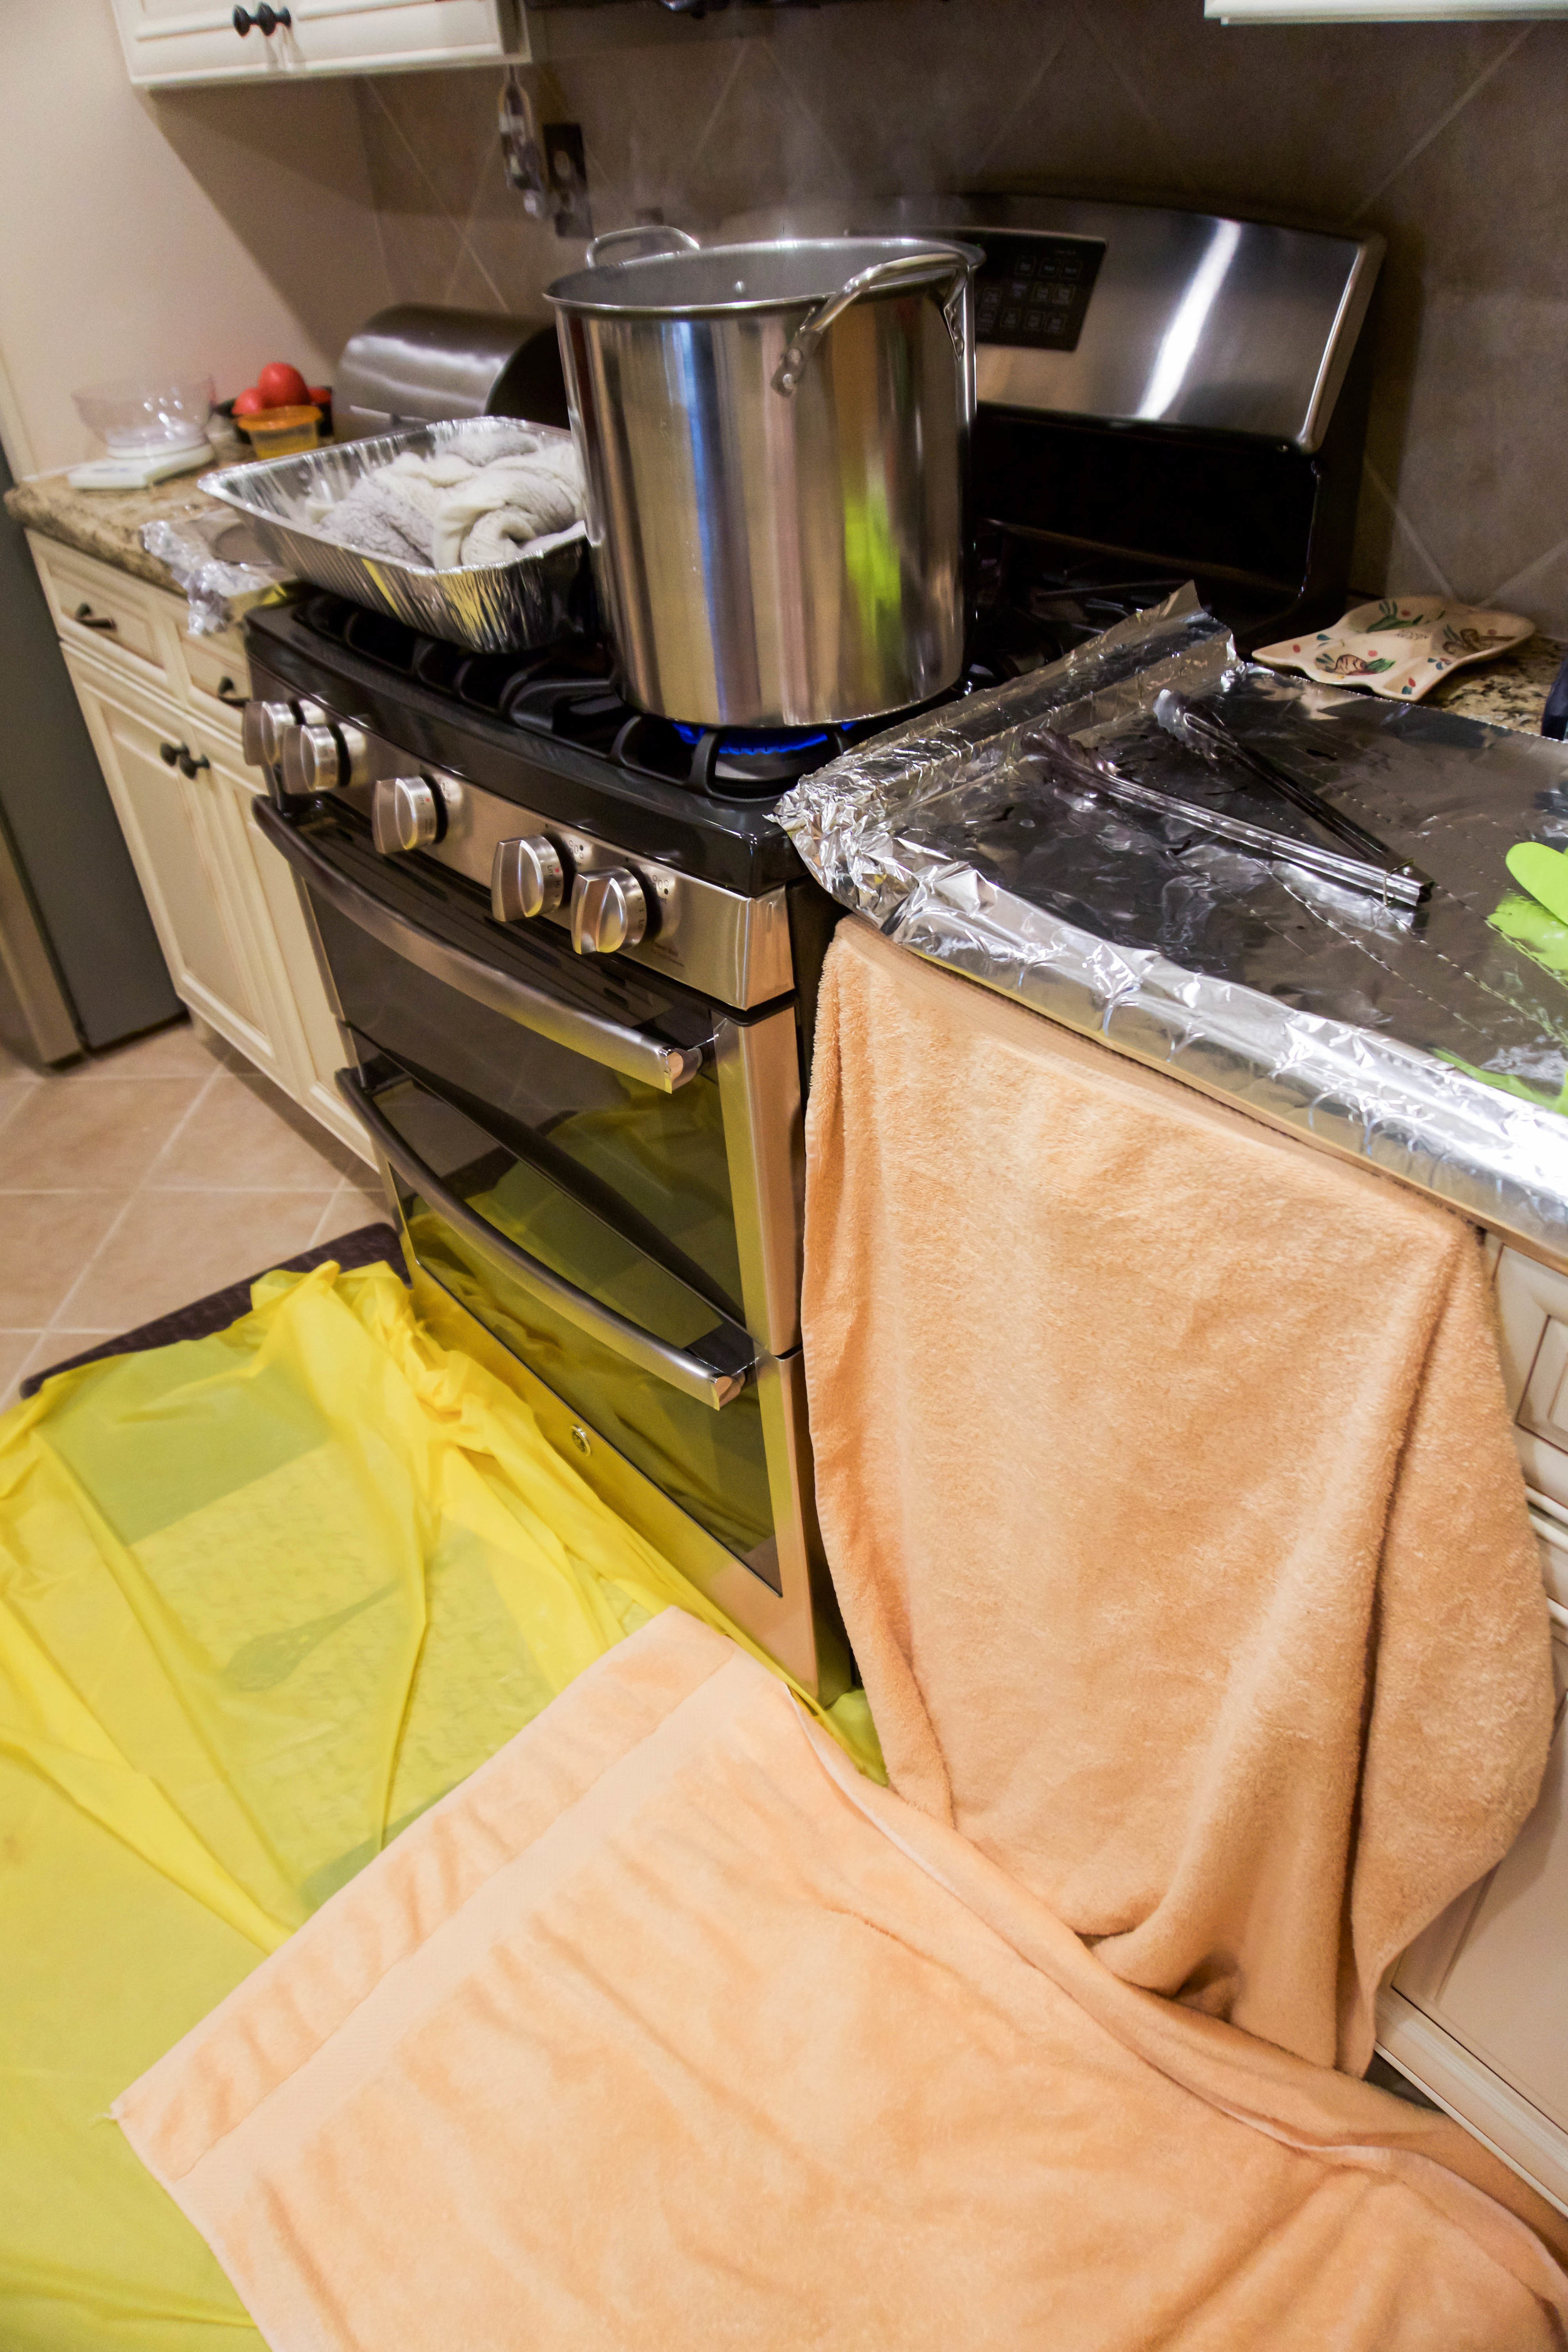 Once I started, I realized I would need reinforcements (A.K.A. more towels and foil) to protect the kitchen from stray dye splatter. Better be safe than annoyed at that one spot you can't clean up!